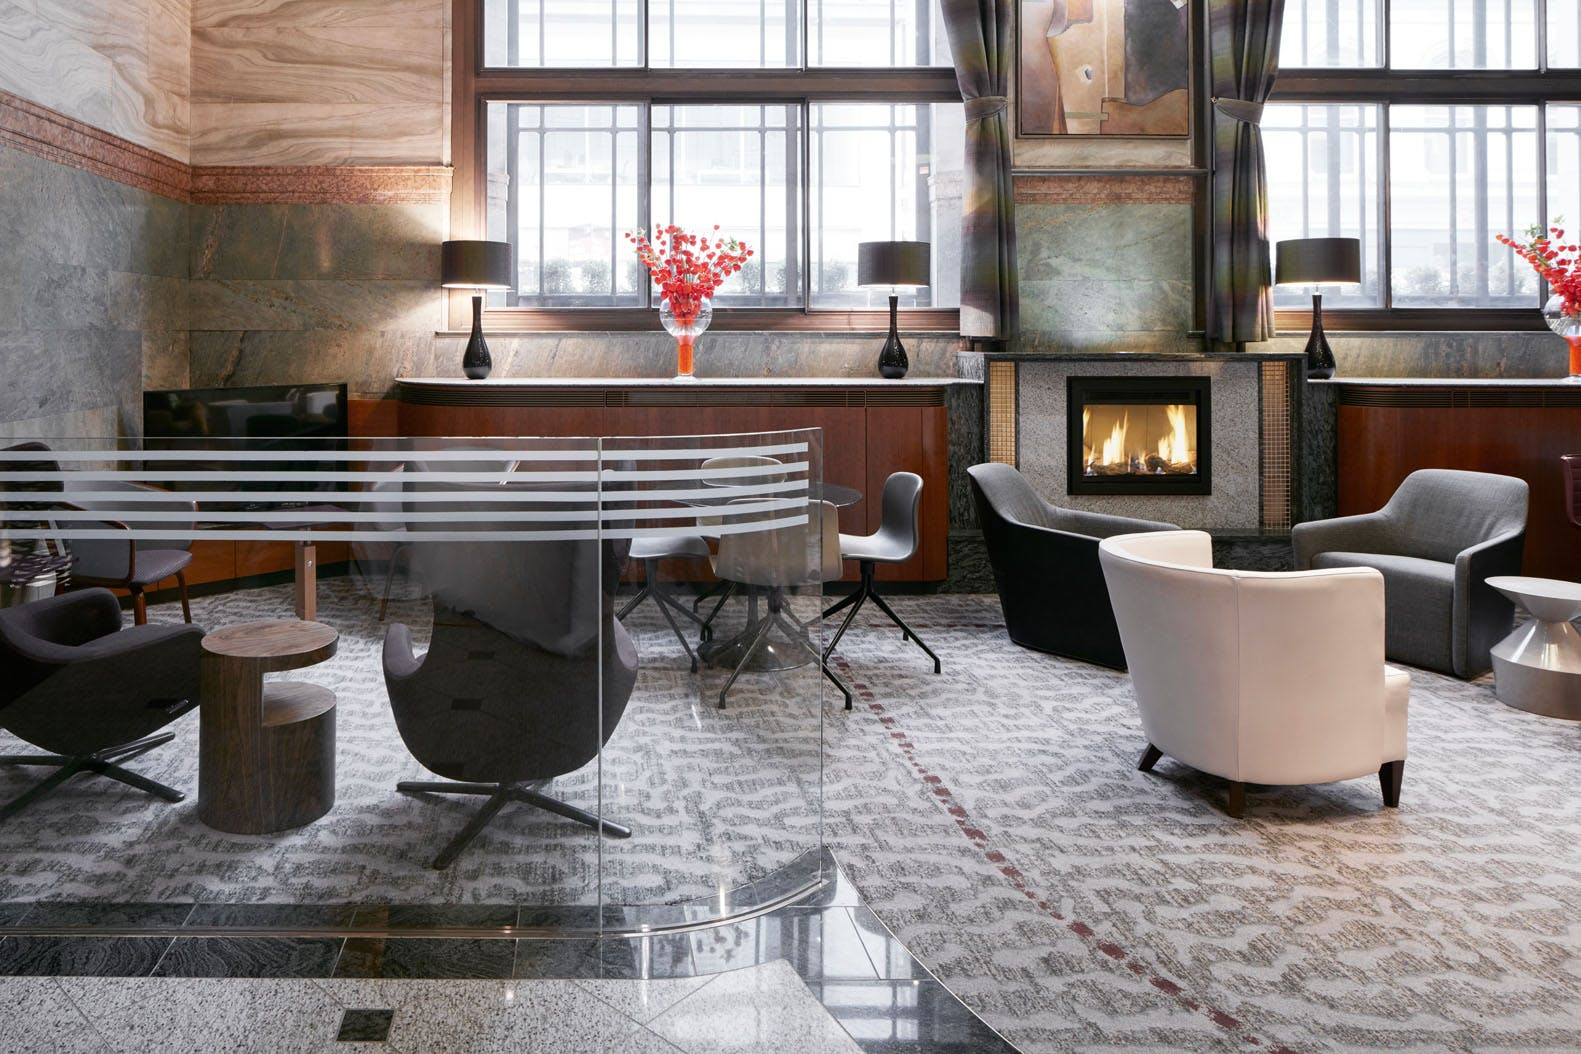 Club Lounge at Club Quarters Hotel, Gracechurch, London